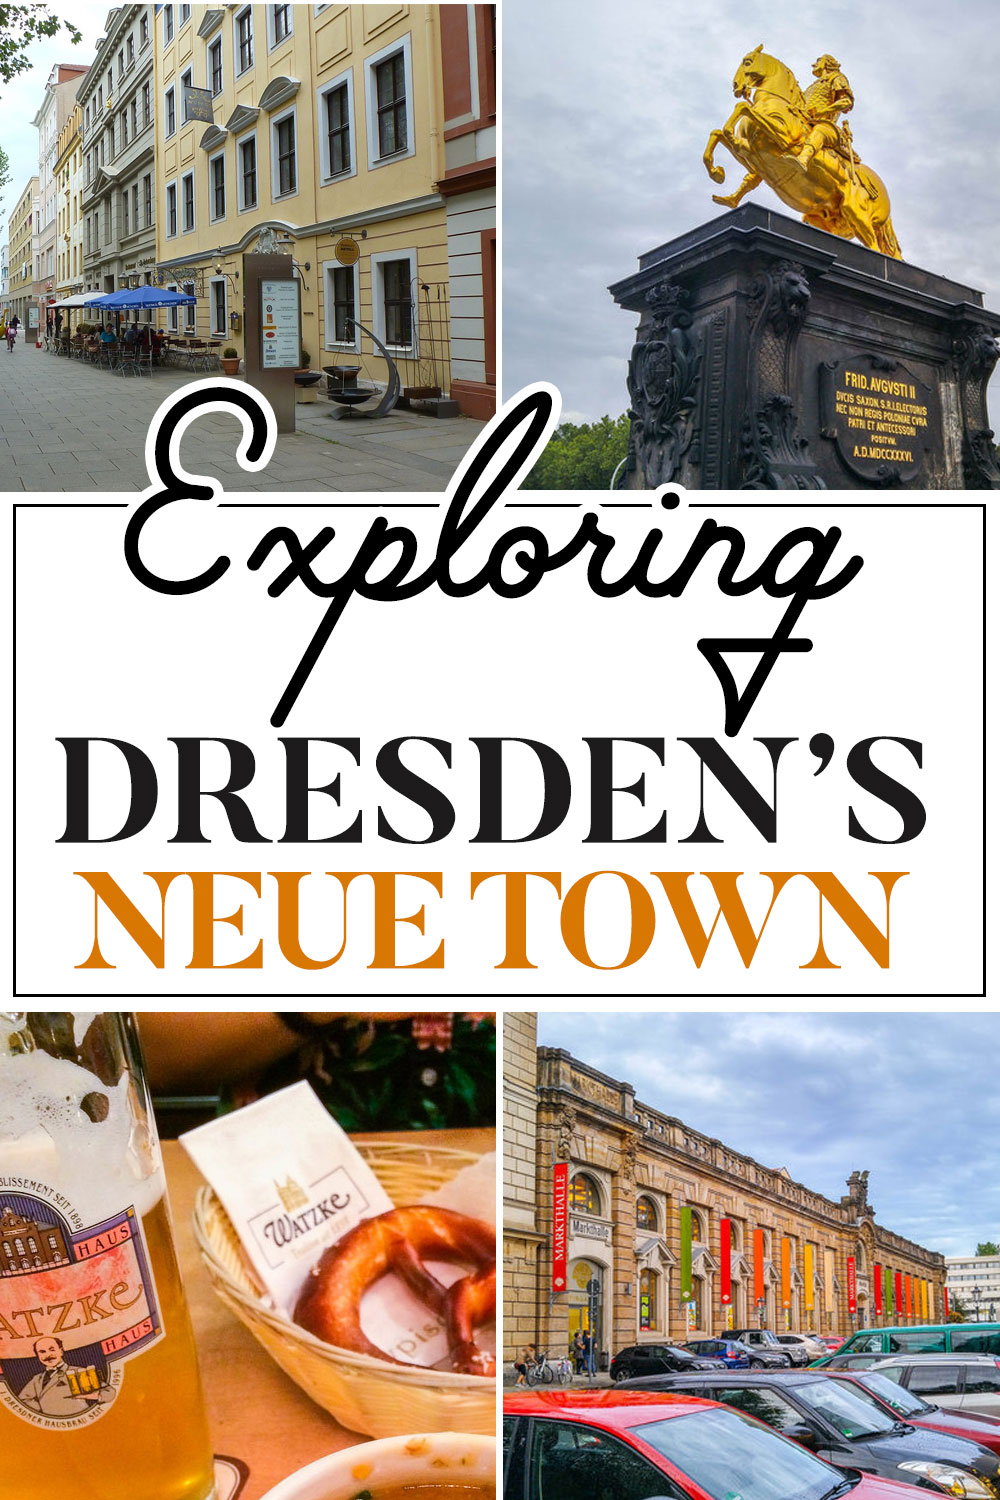 Walking Guide to Dresden's Neue Town